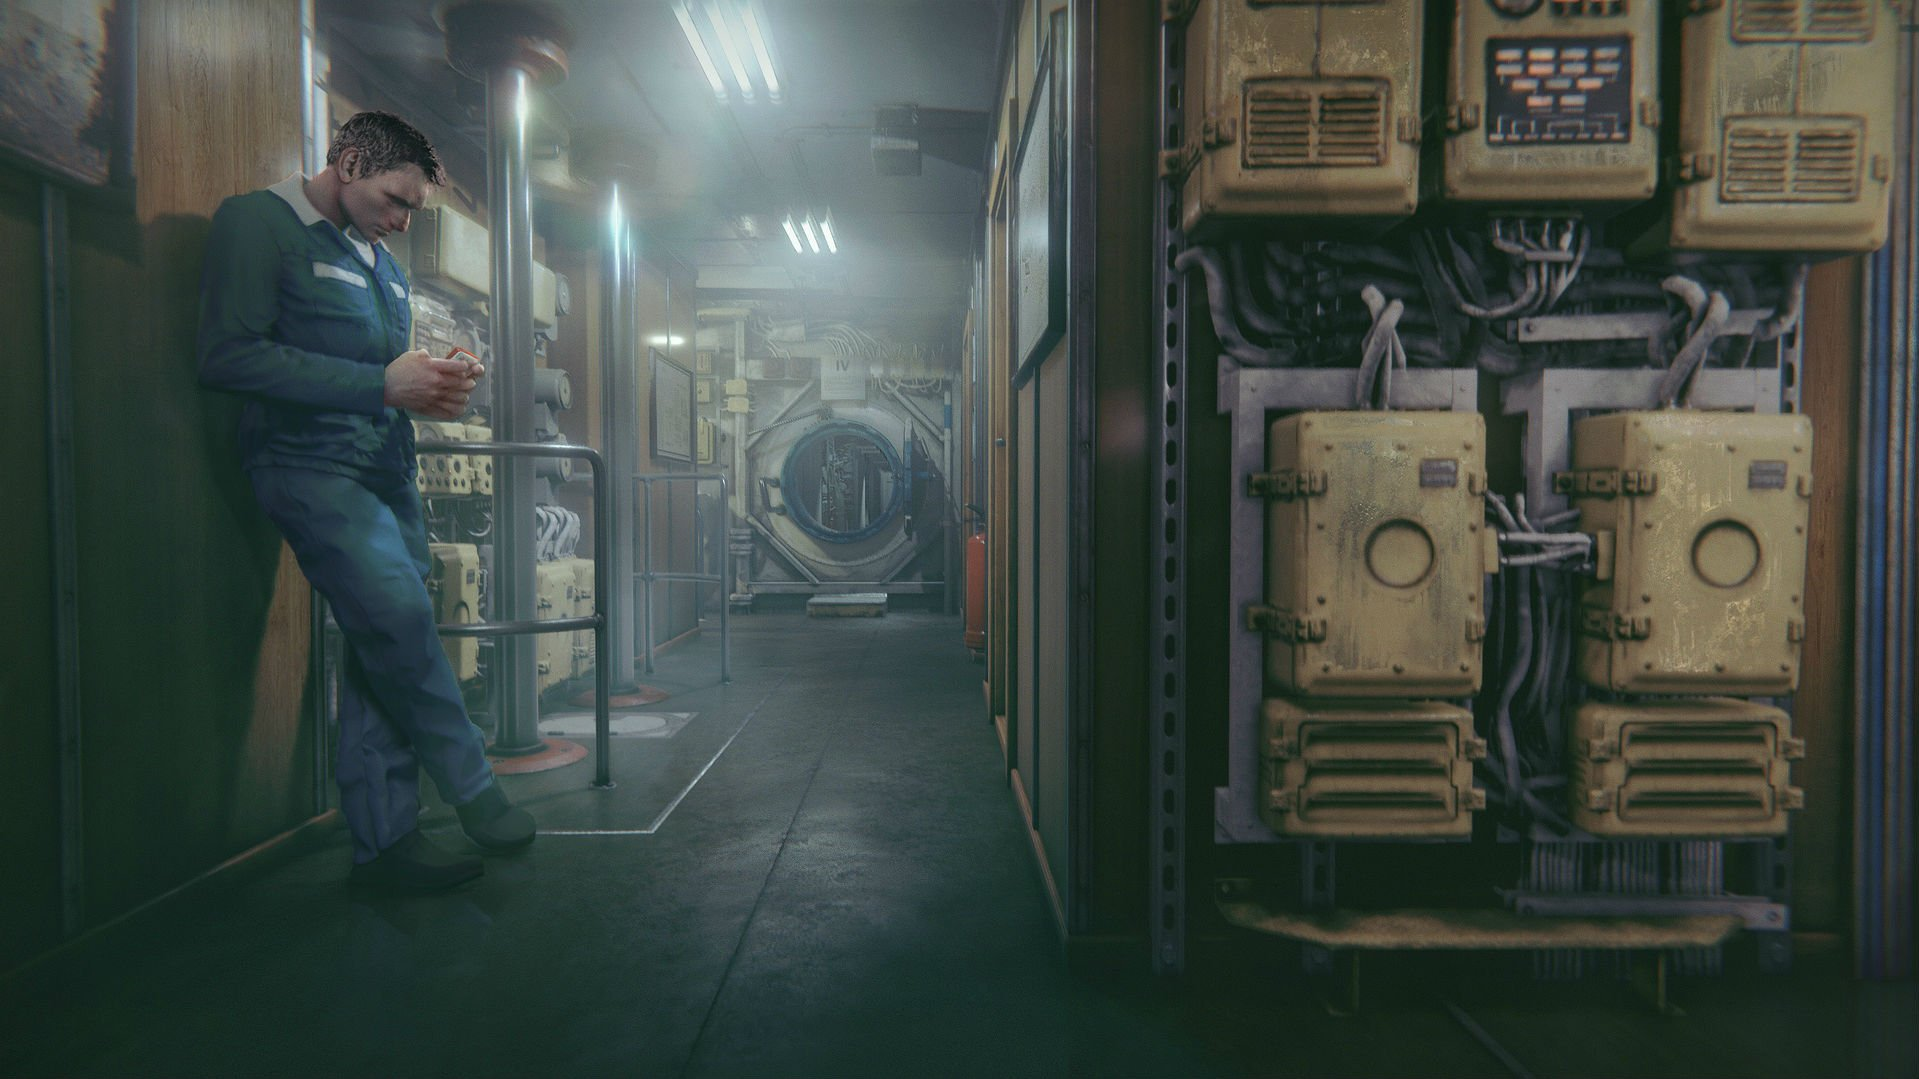 Brand New Kursk Trailer Shows Life aboard a Submarine